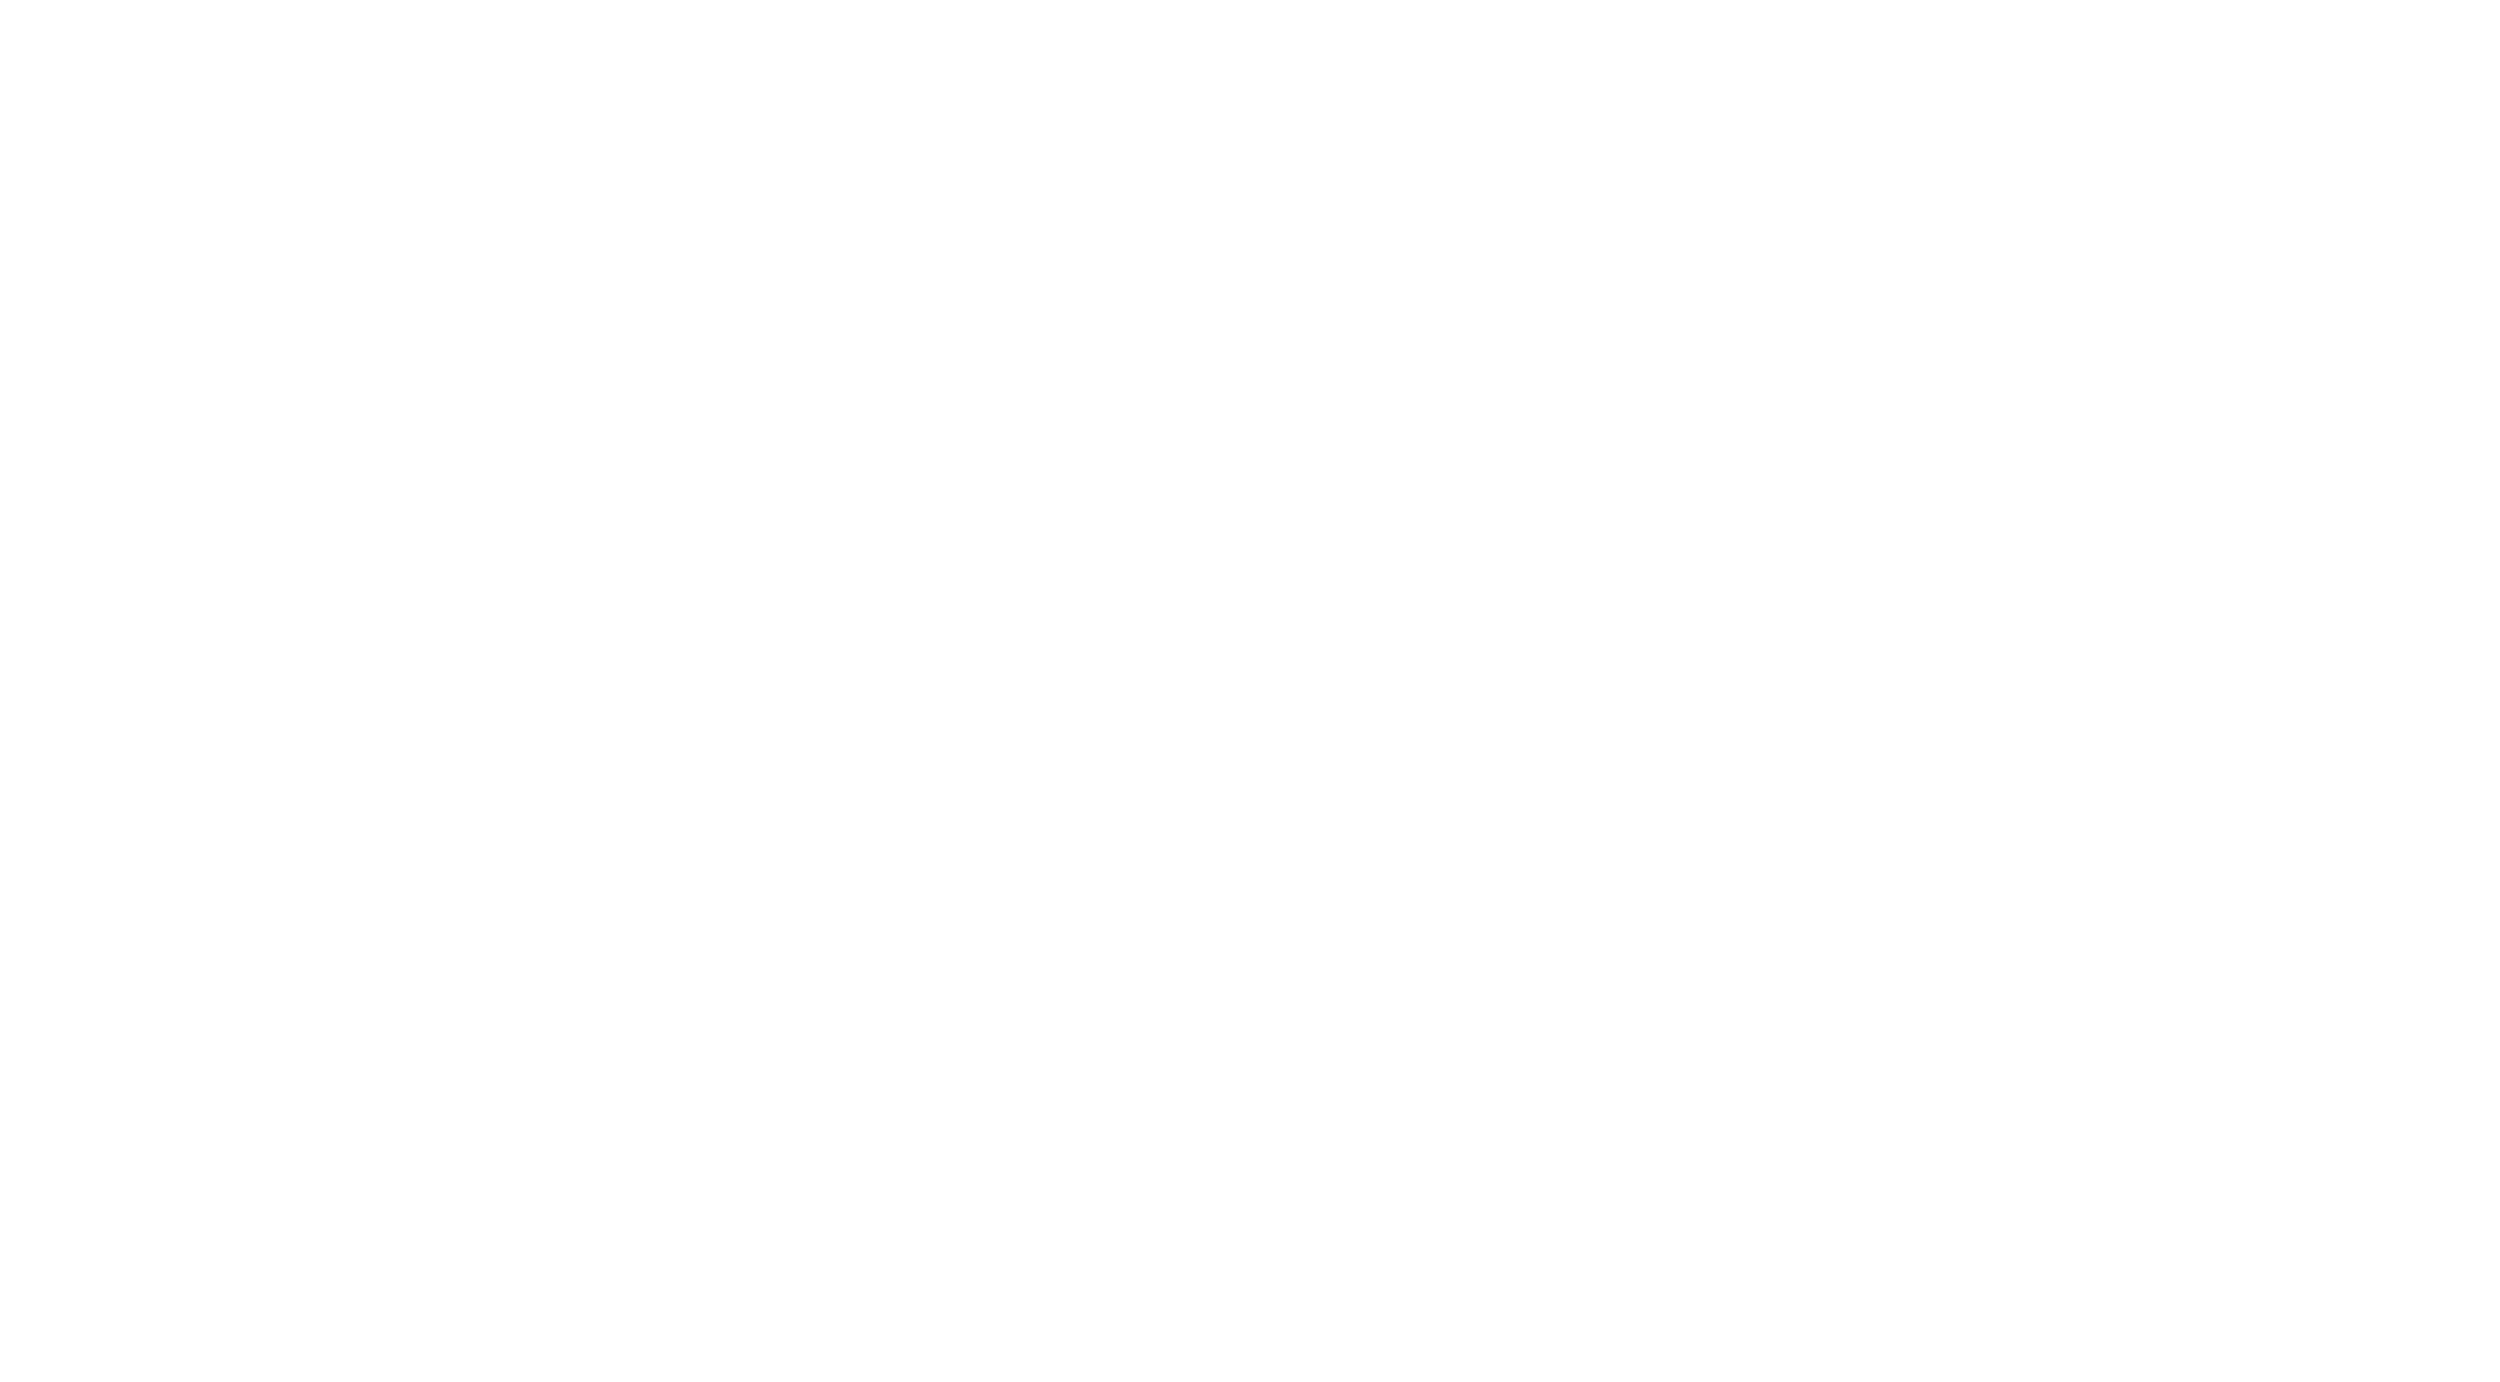 Logo White Expanded-01.png